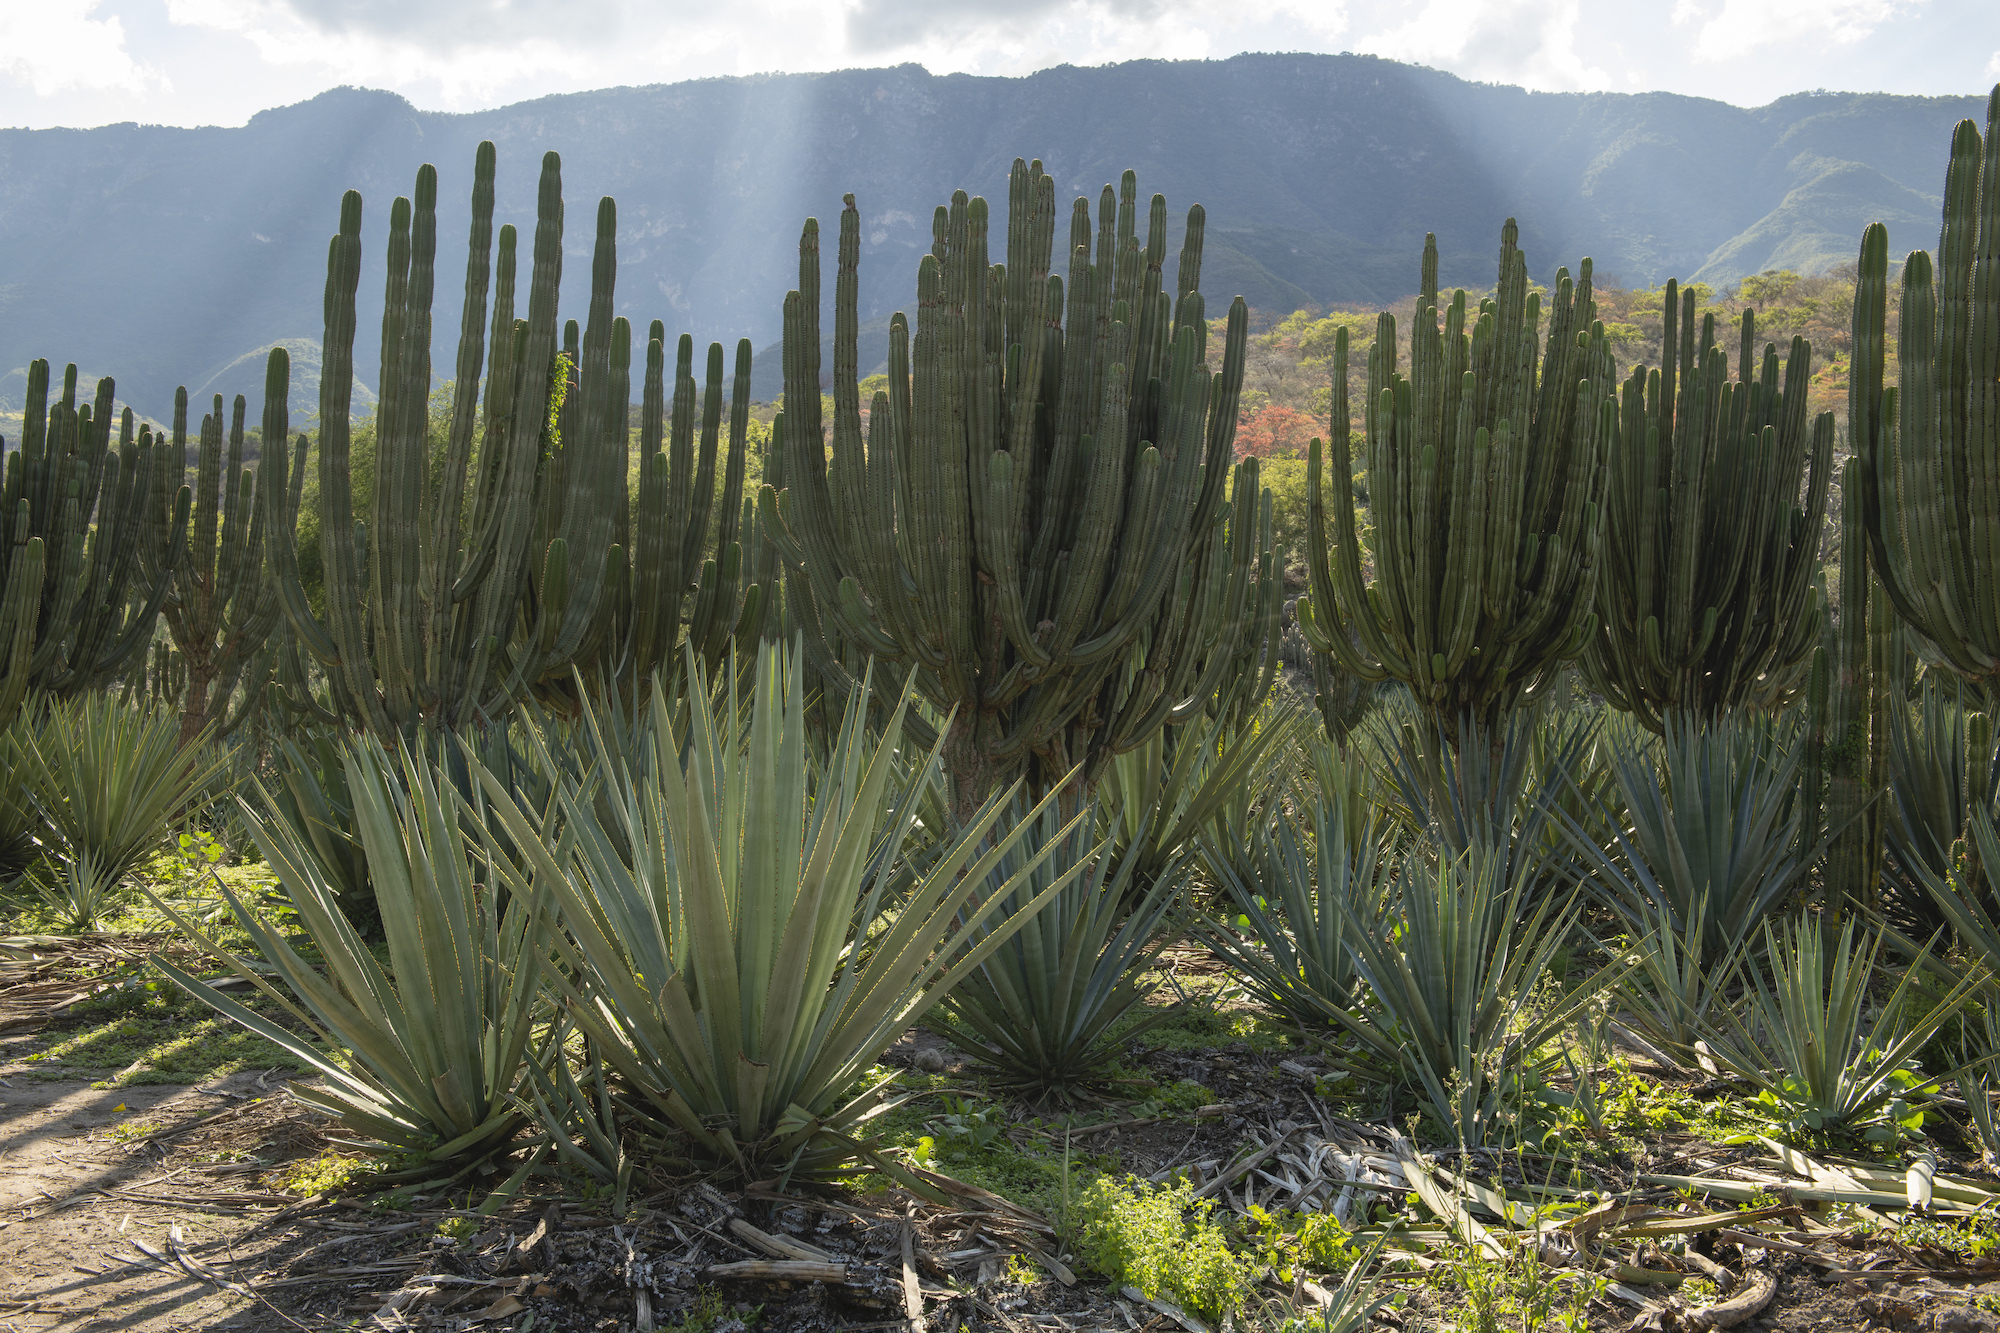 Intercropping of agave and columnar cacti near Las Canoas in Jalisco, Mexico